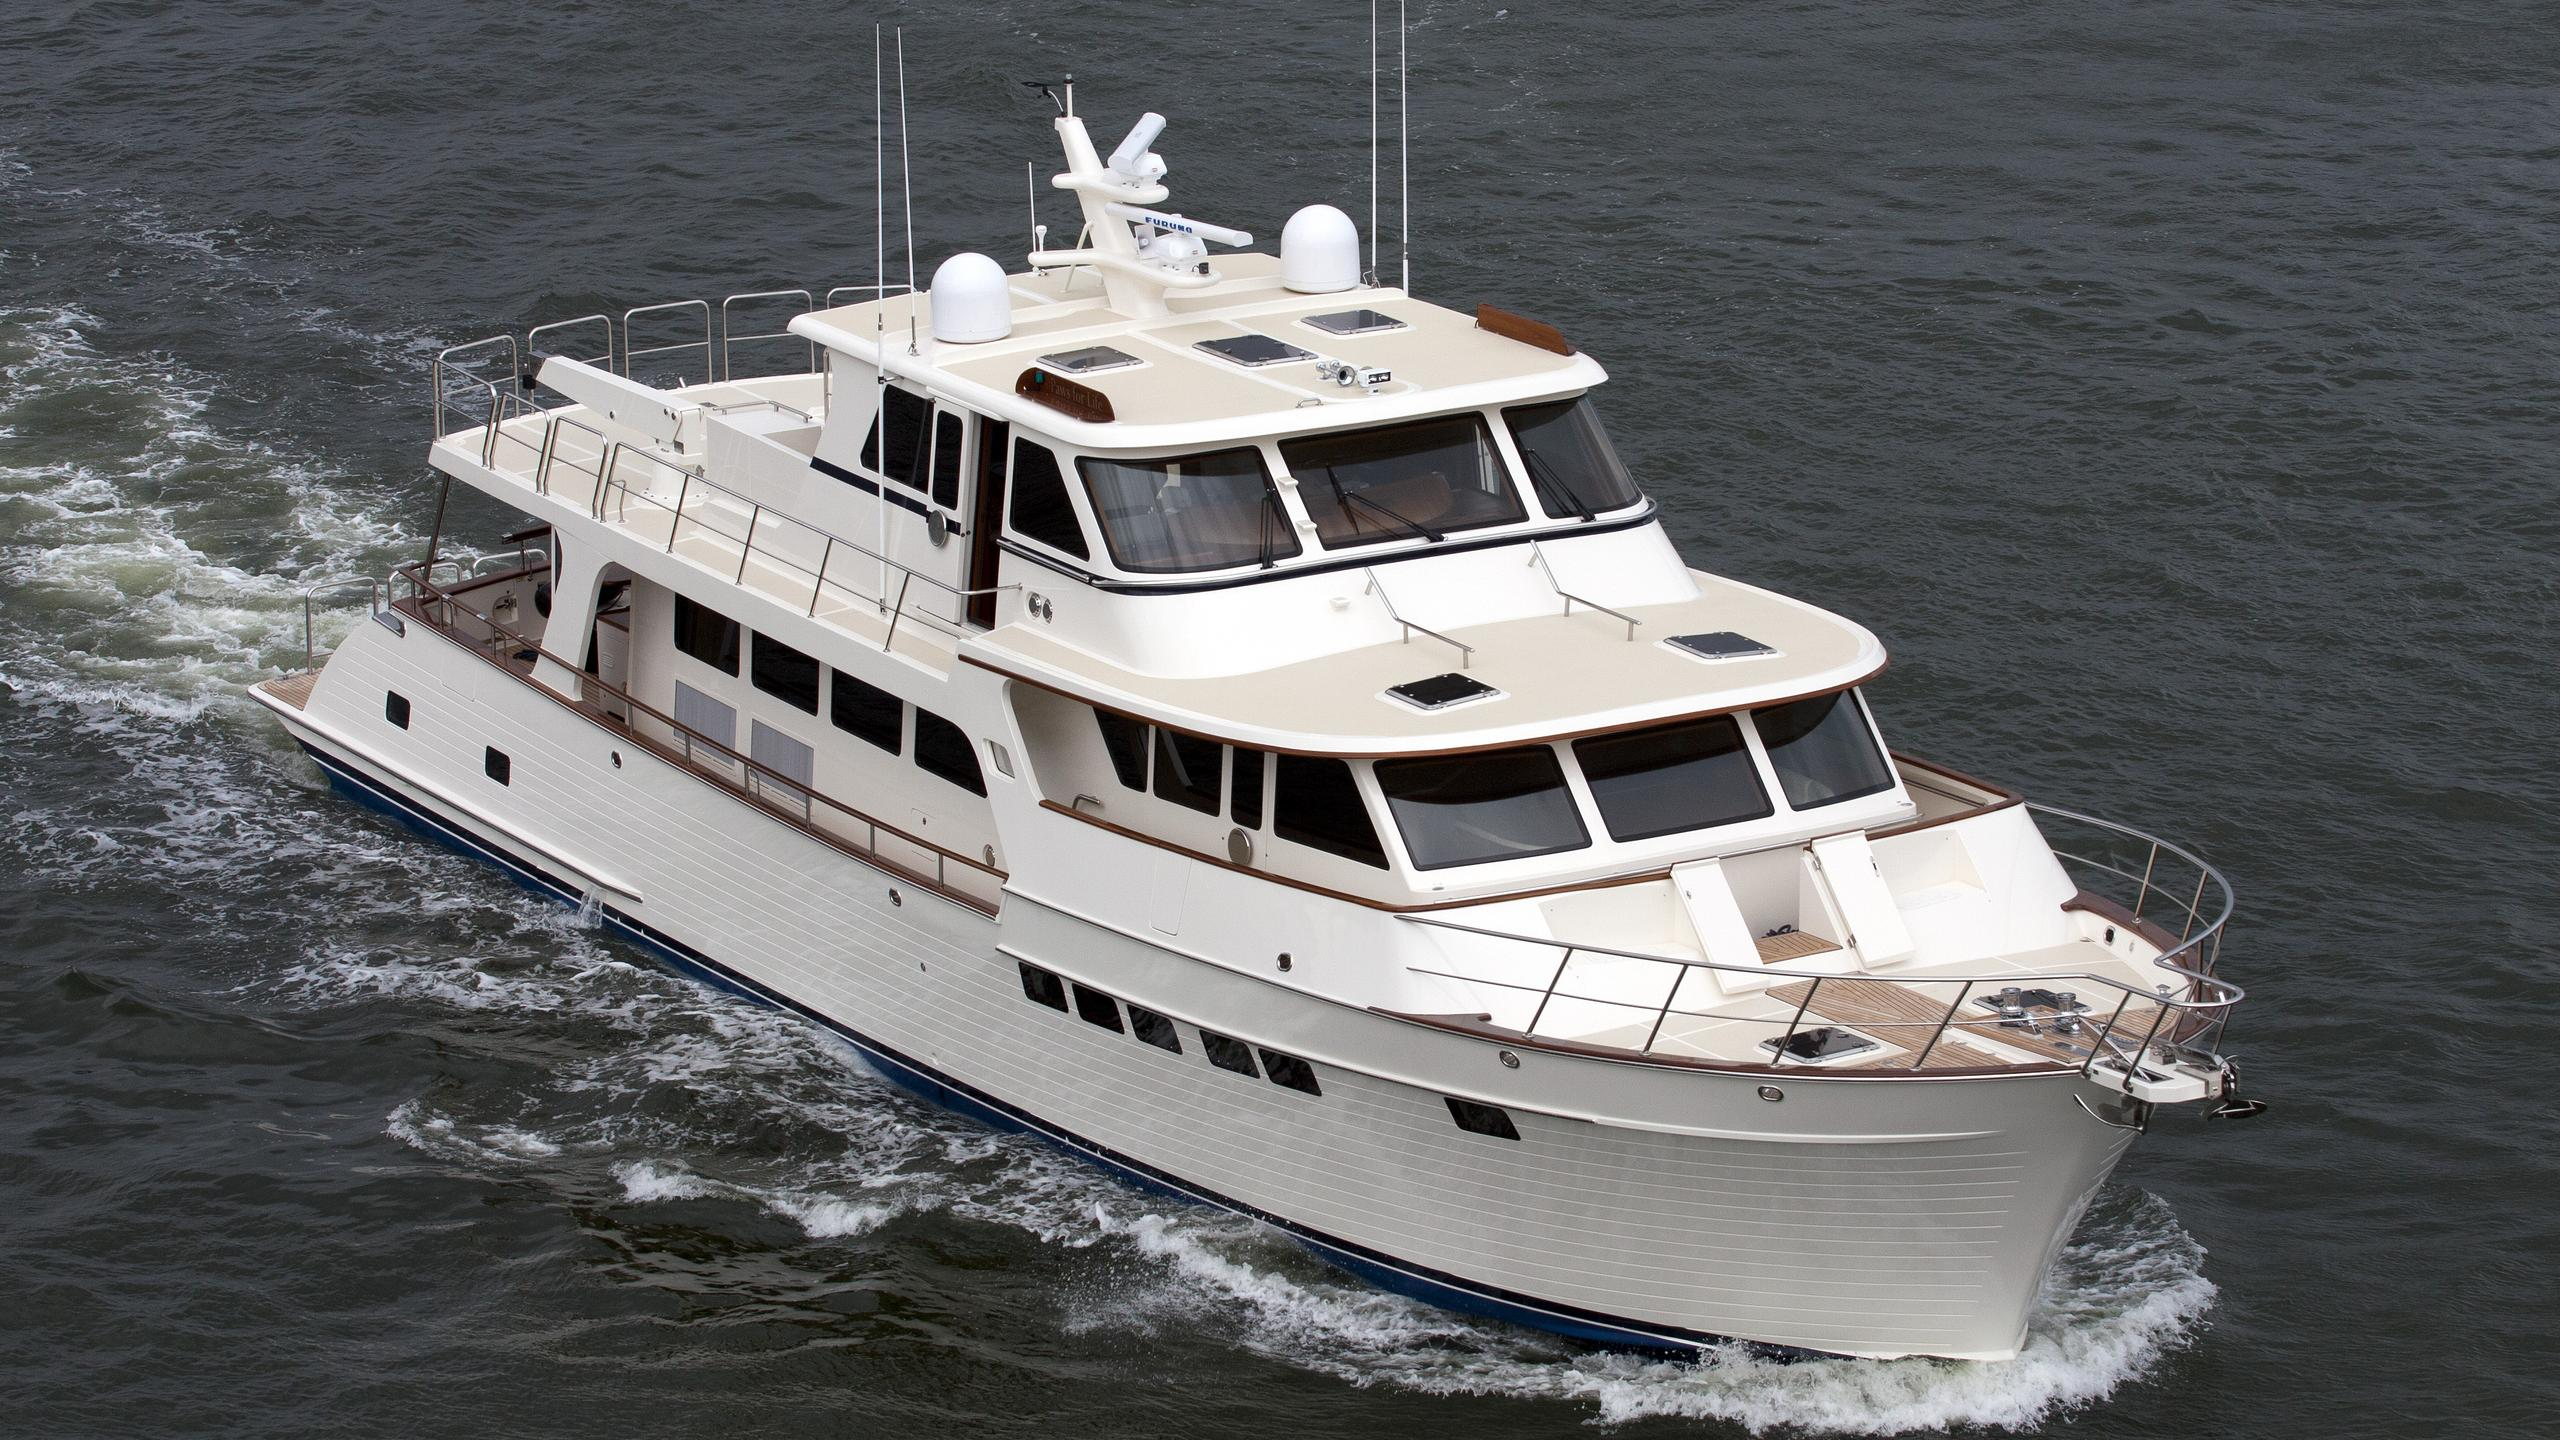 paws-for-life-yacht-exterior